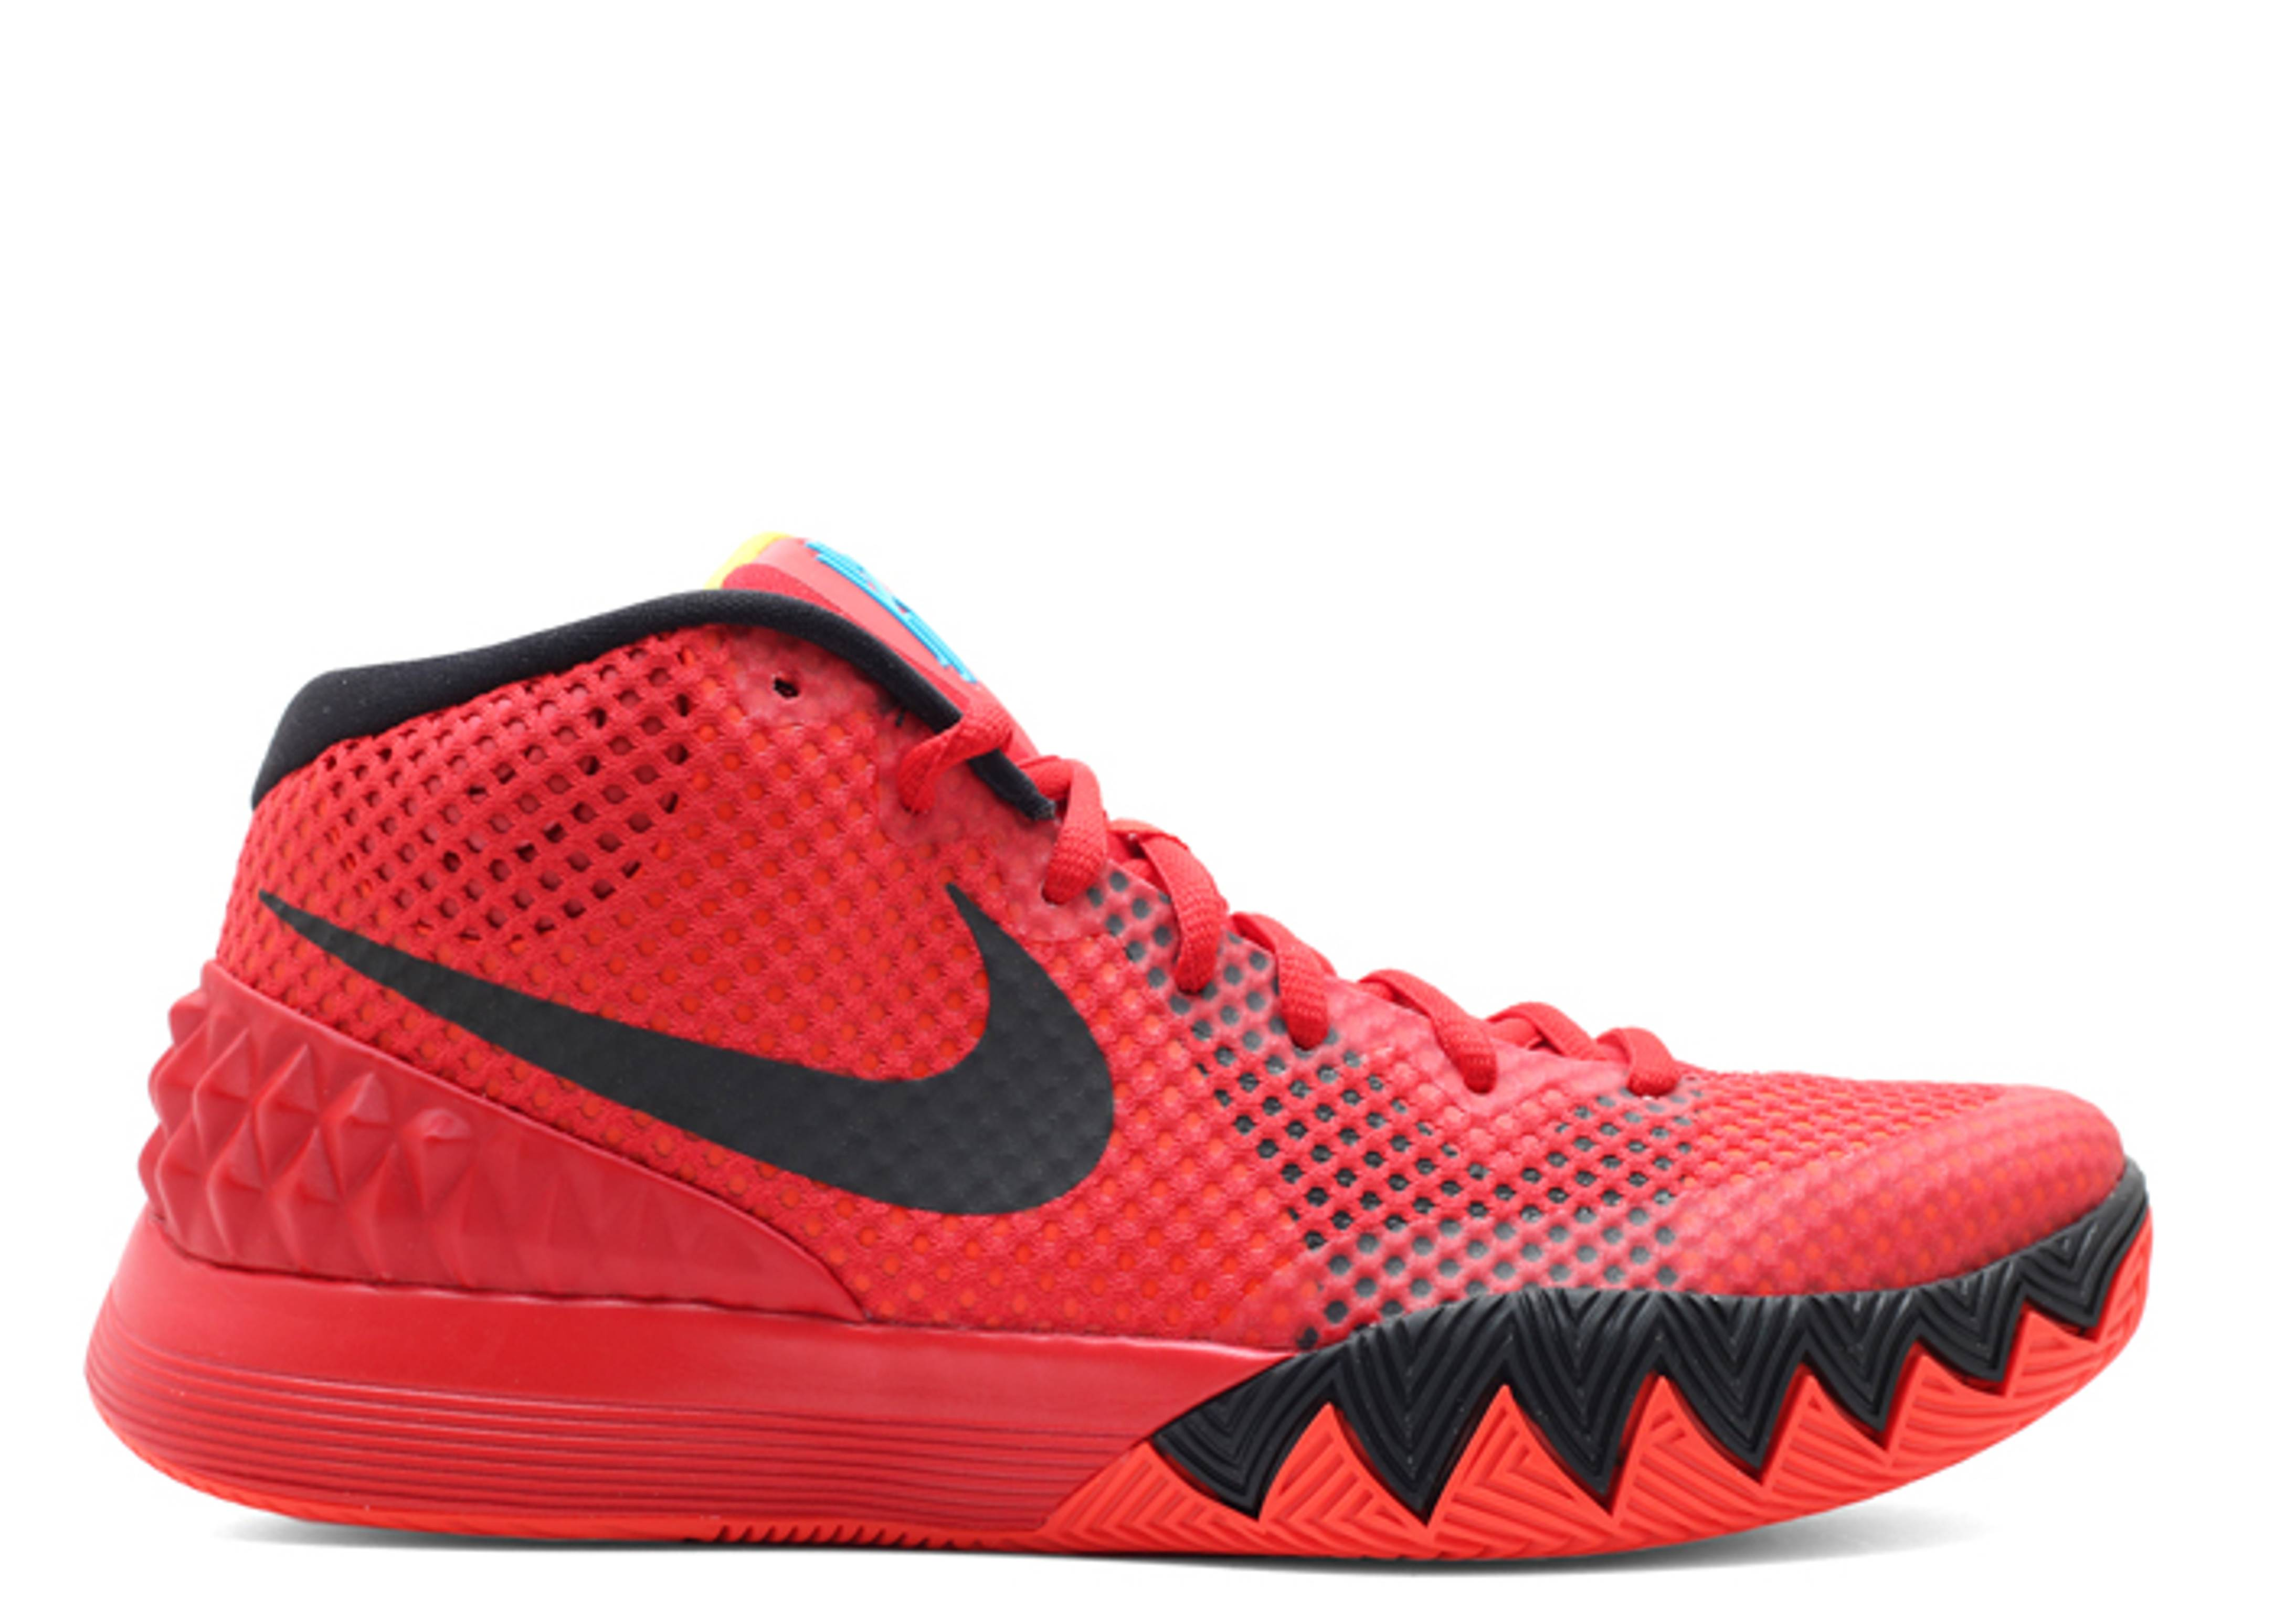 new style 81a3a ff0bc kyrie 1